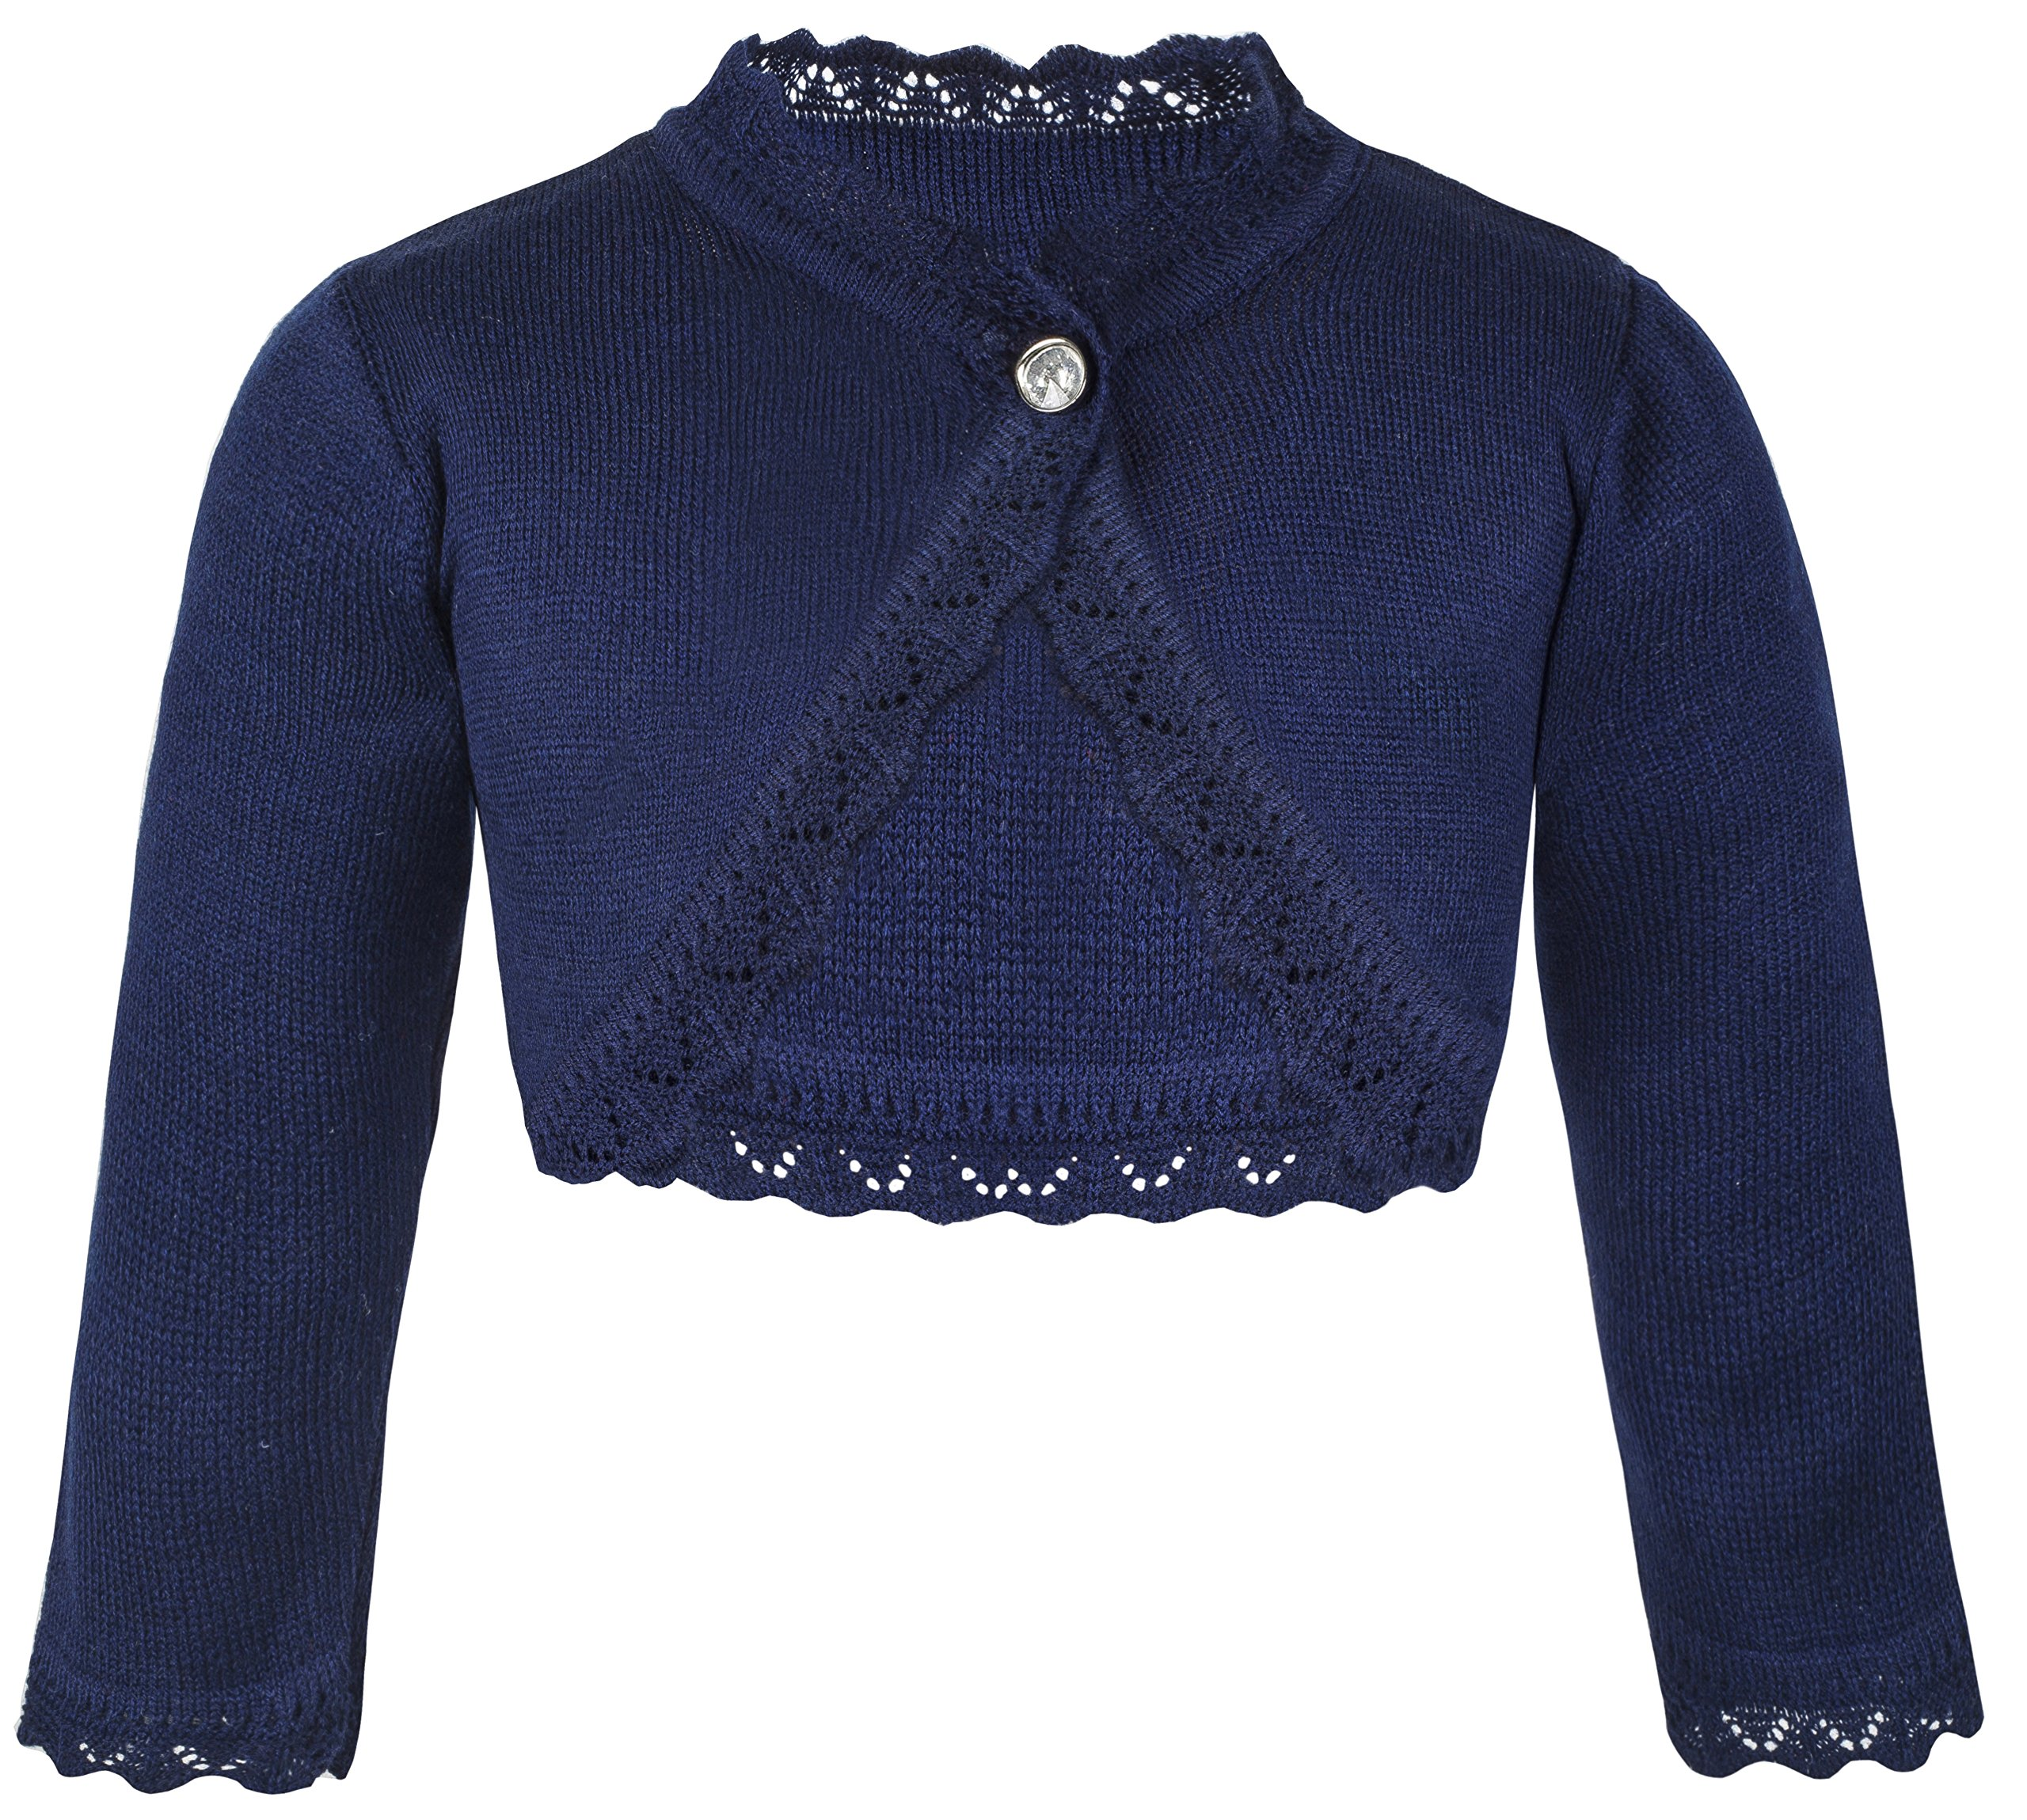 Lilax Little Girls' Knit Long Sleeve Button Closure Bolero Cardigan Shrug 4T Navy